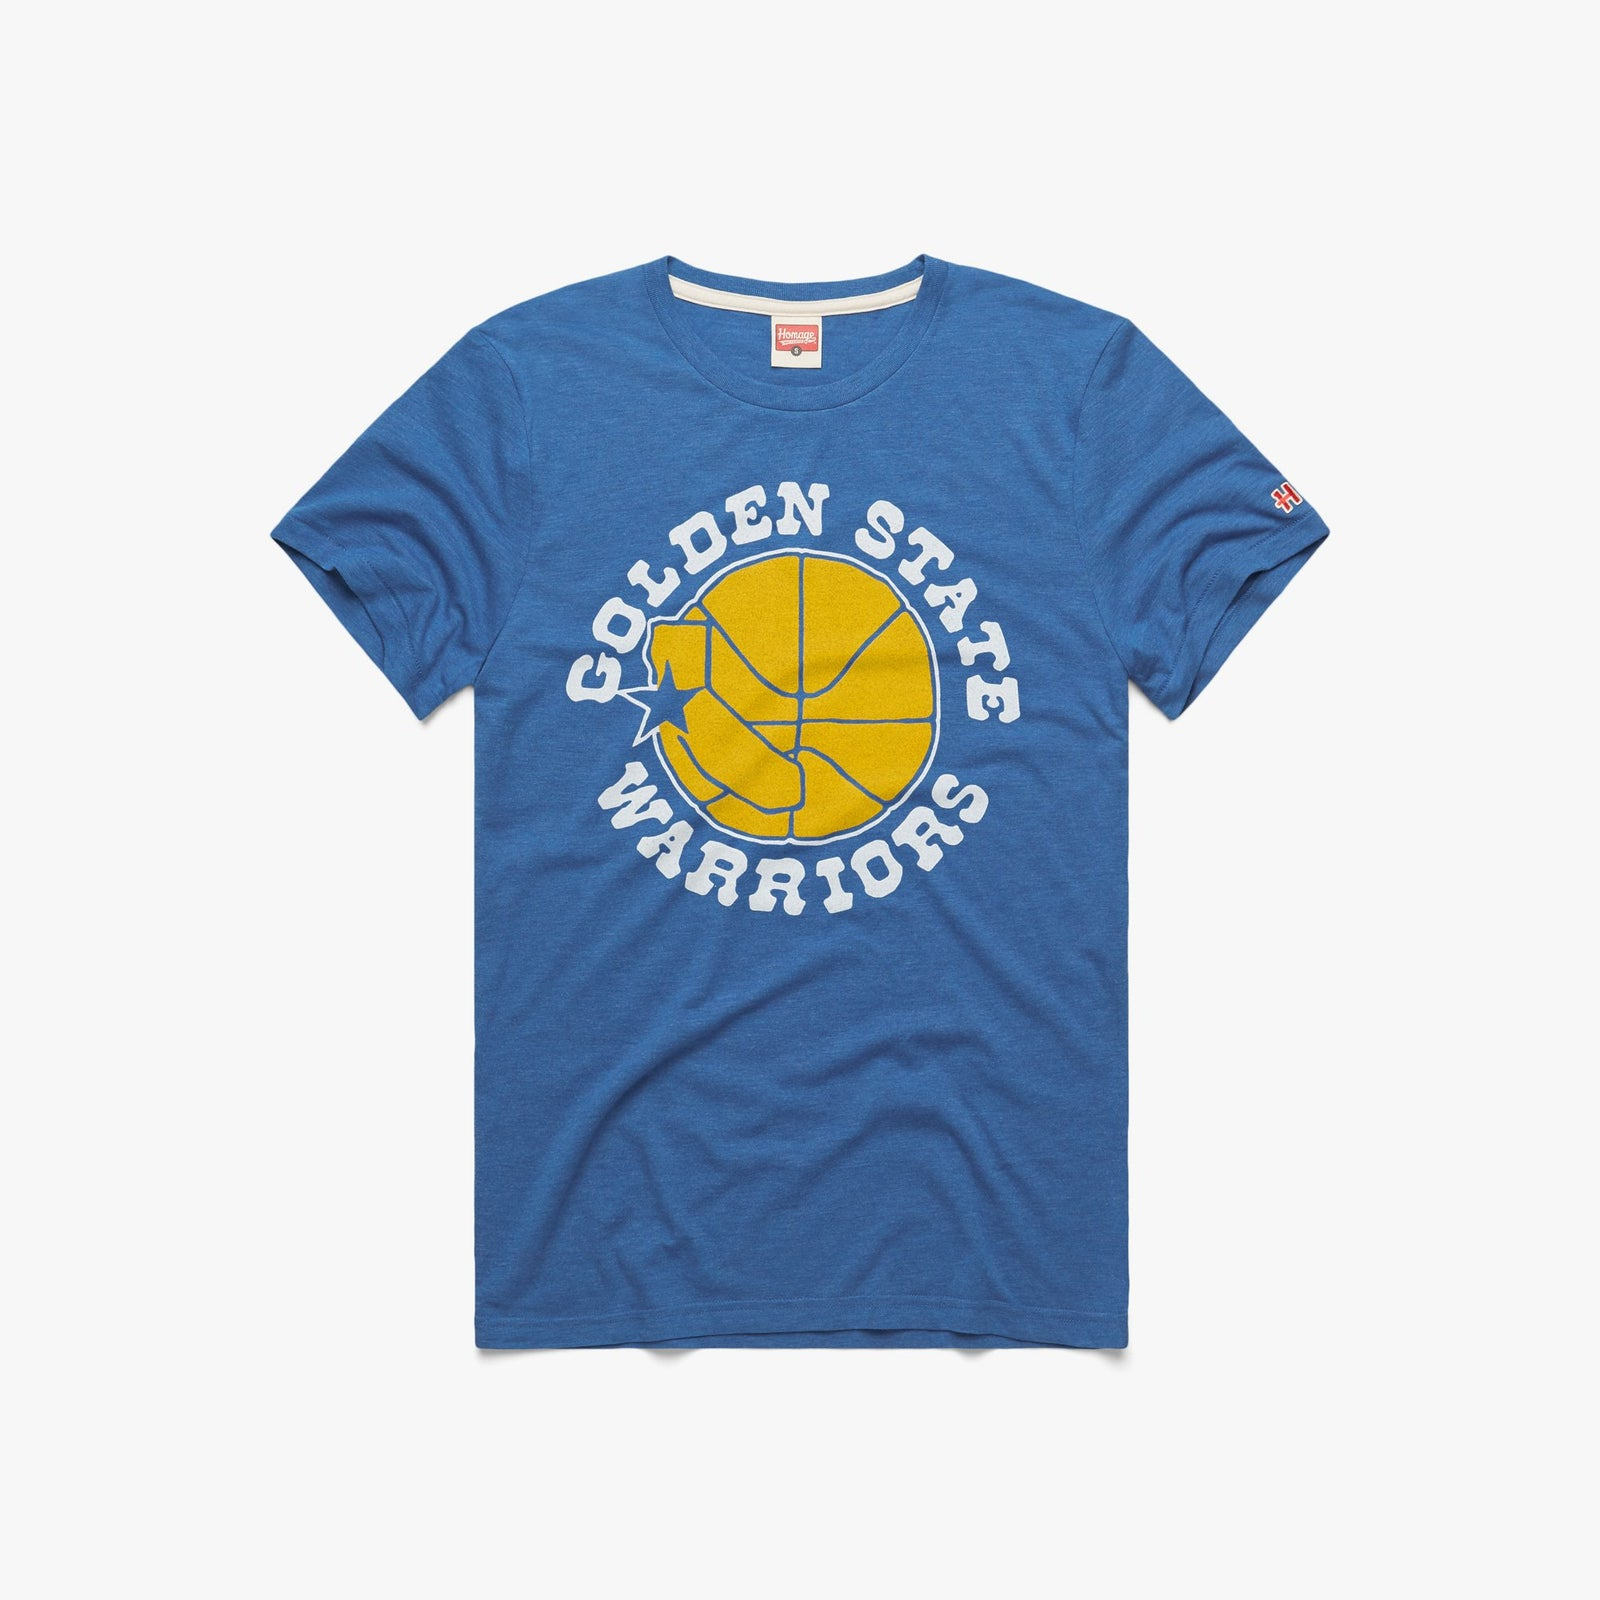 Golden State Warriors '88